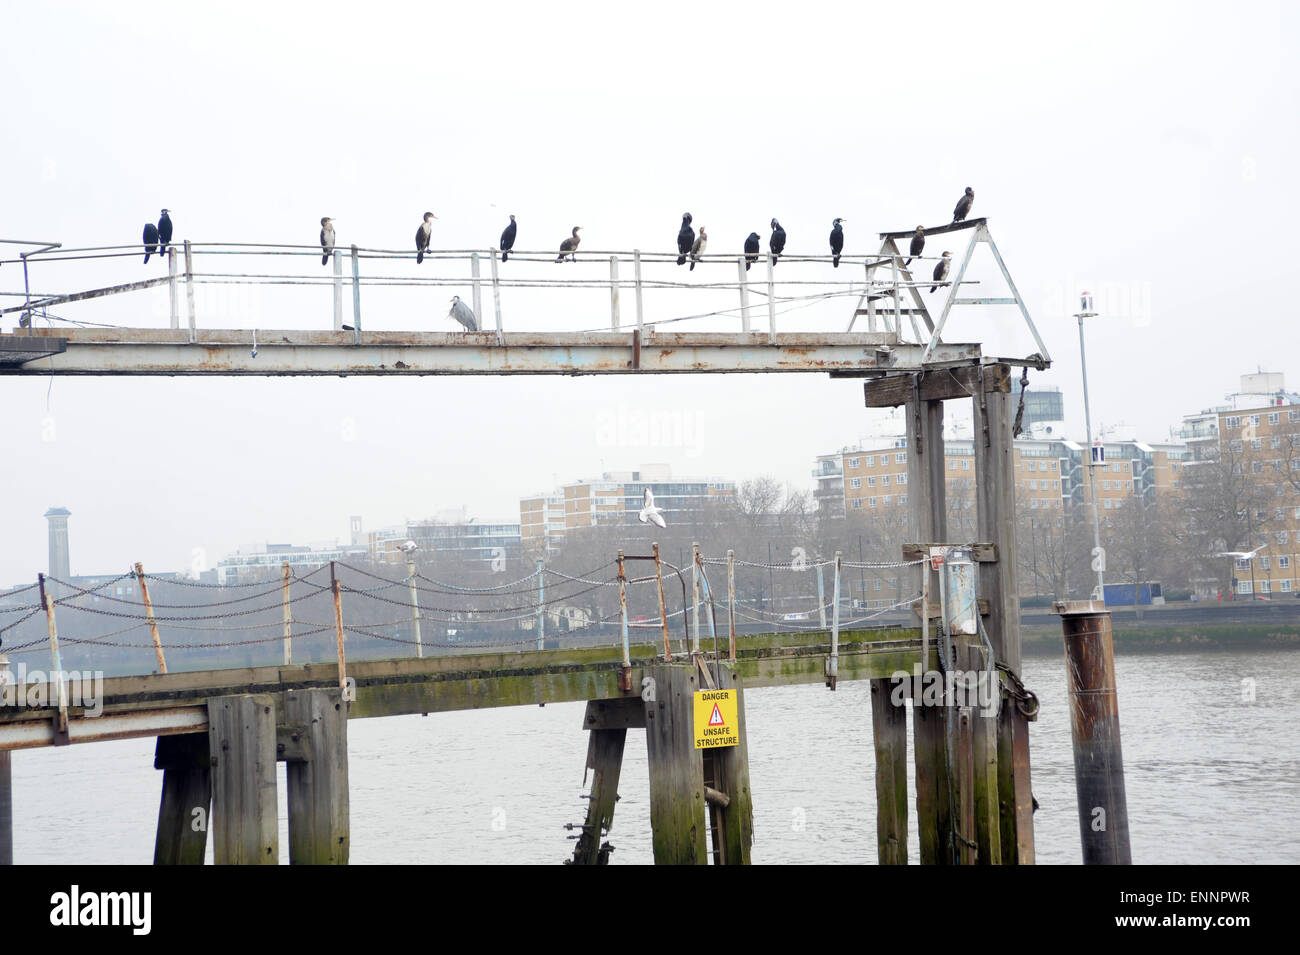 London, UK, 20 March 2015, cormorants on pier at Vauxhall on south bank of river Thames. Stock Photo